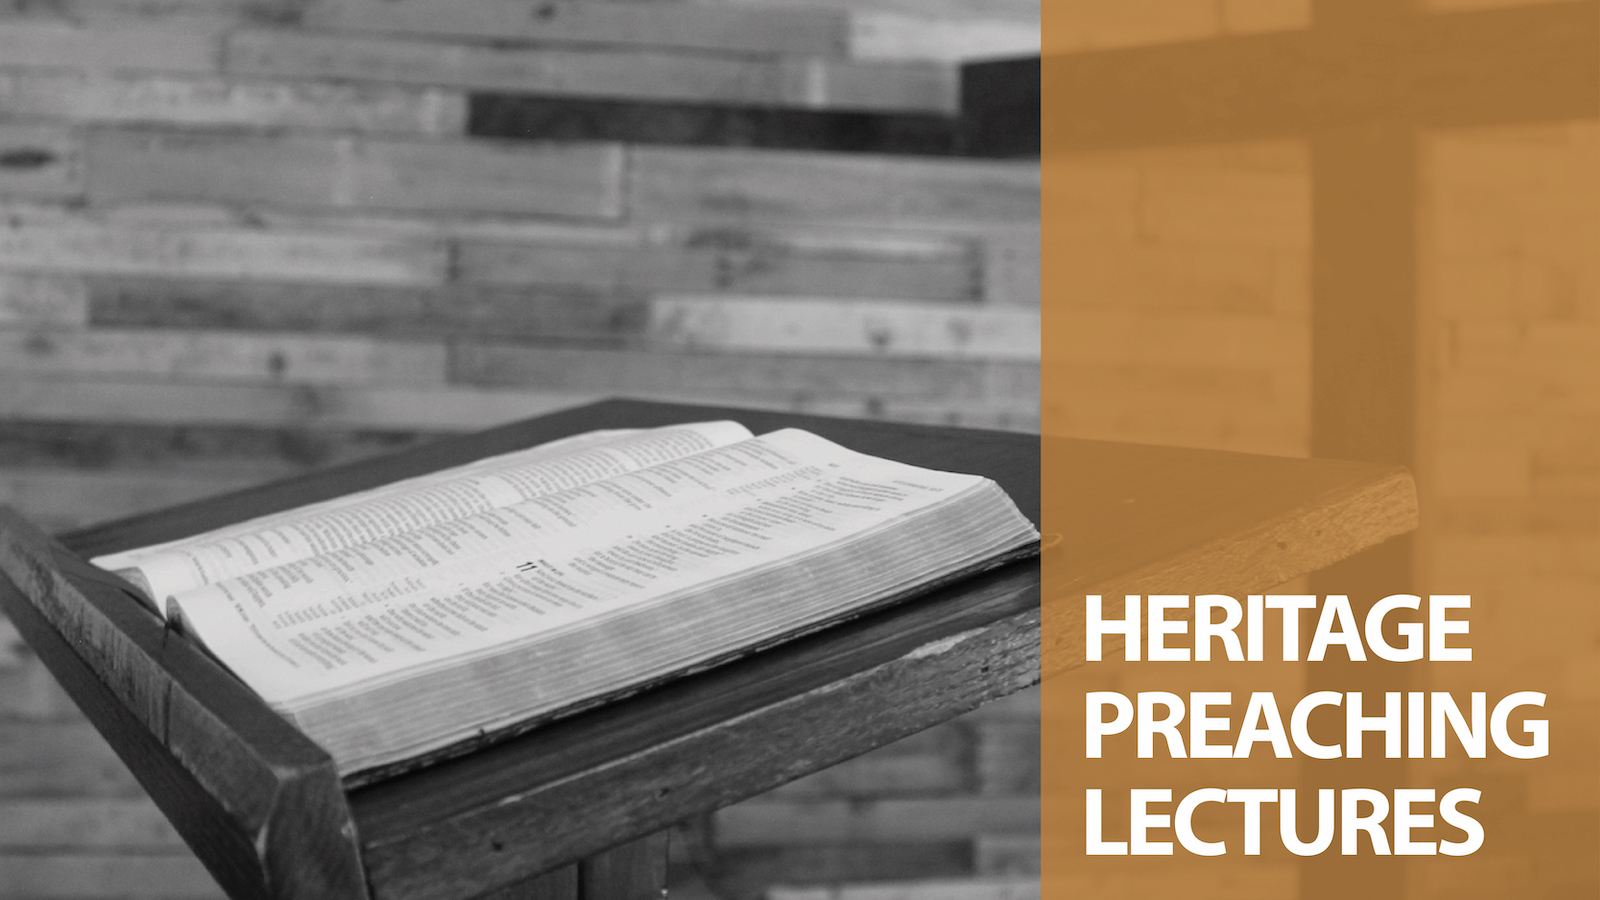 Heritage Preaching Lectures 2020